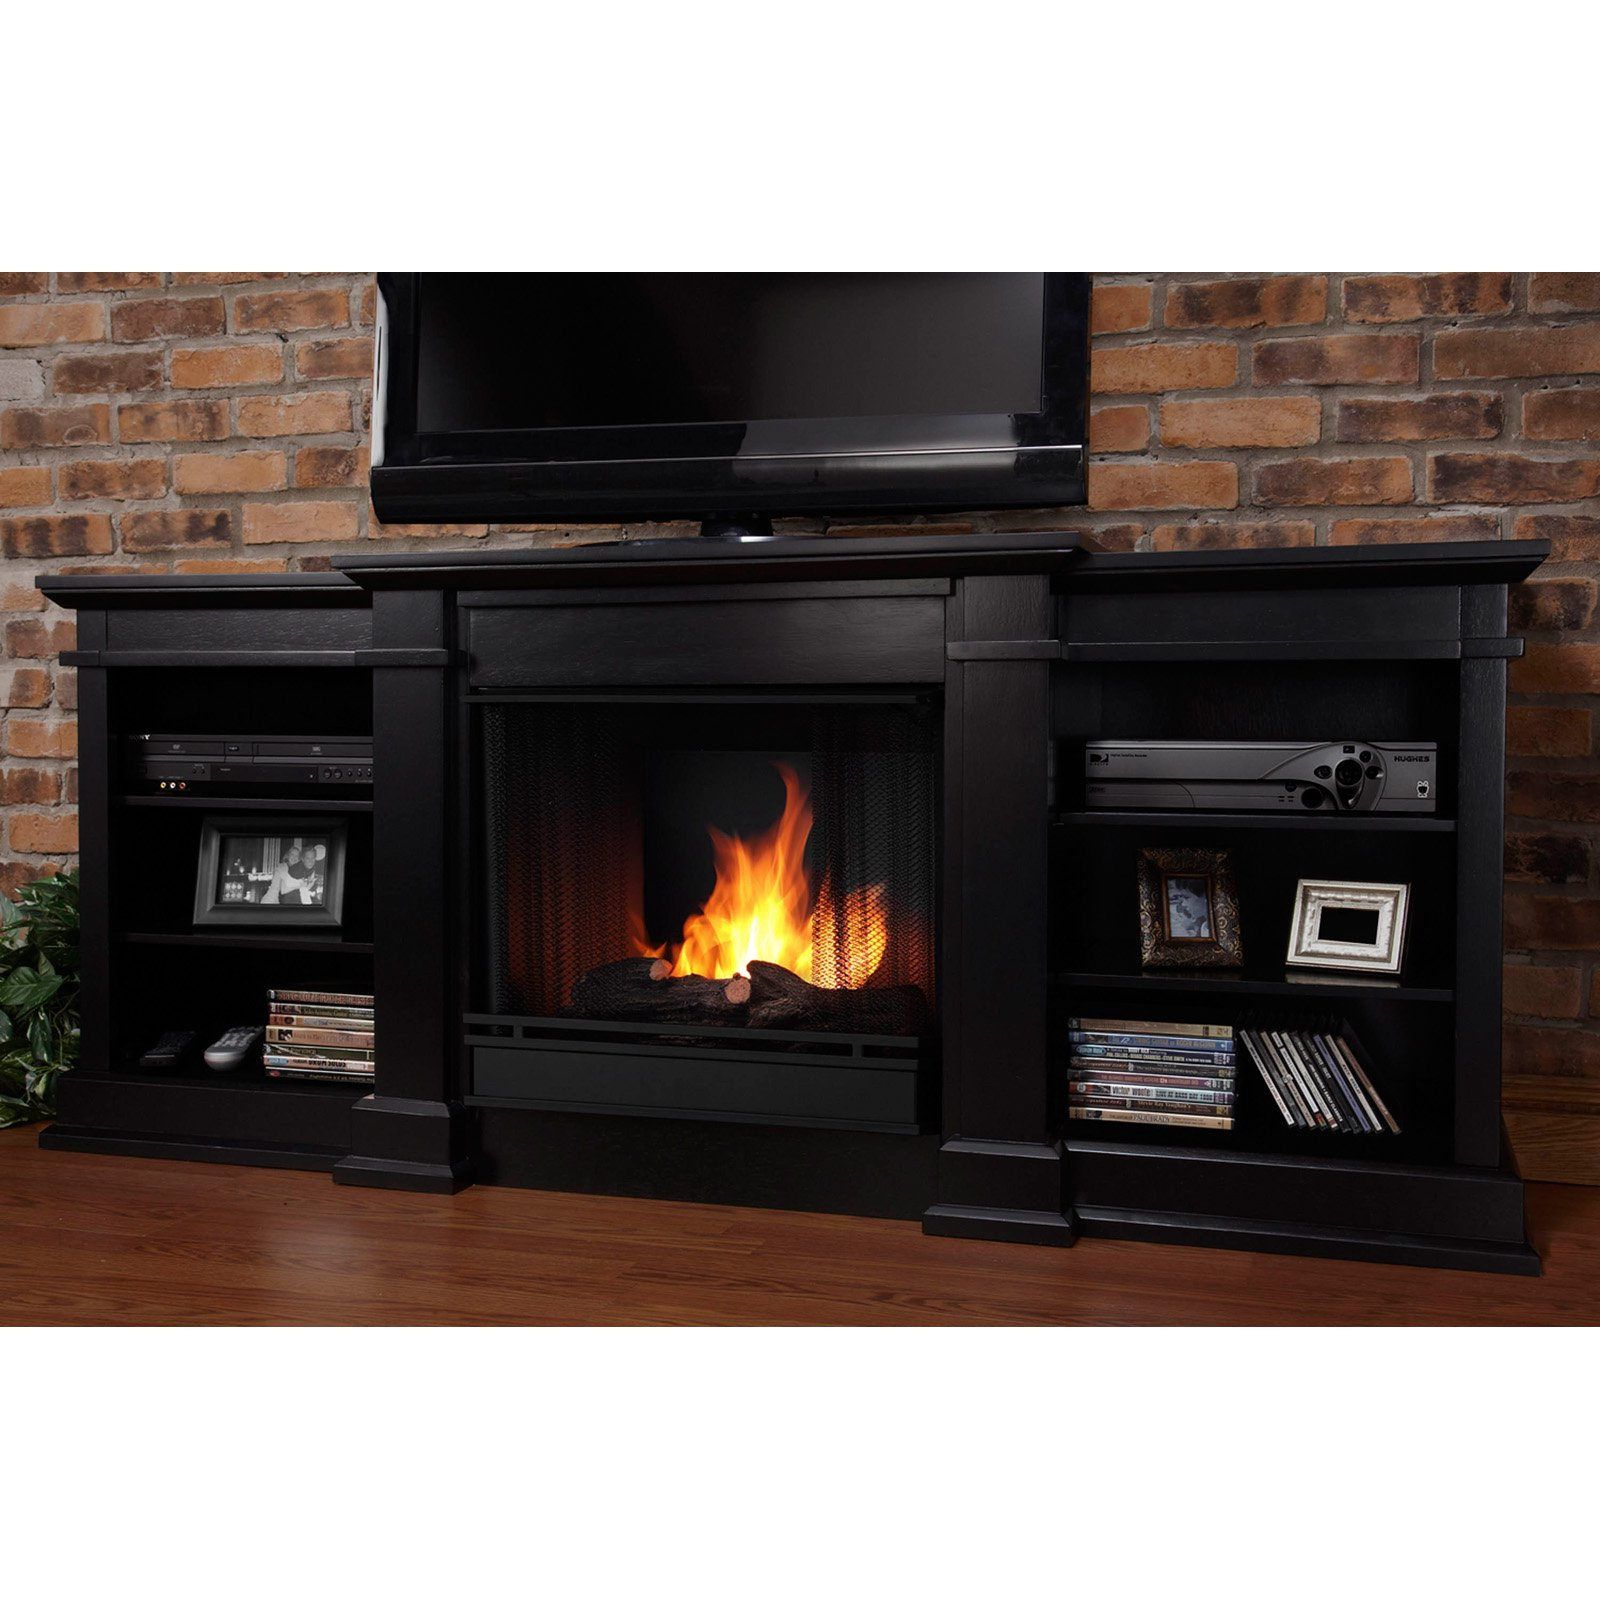 Real Flame Fresno Ventless Gel Fireplace - Black